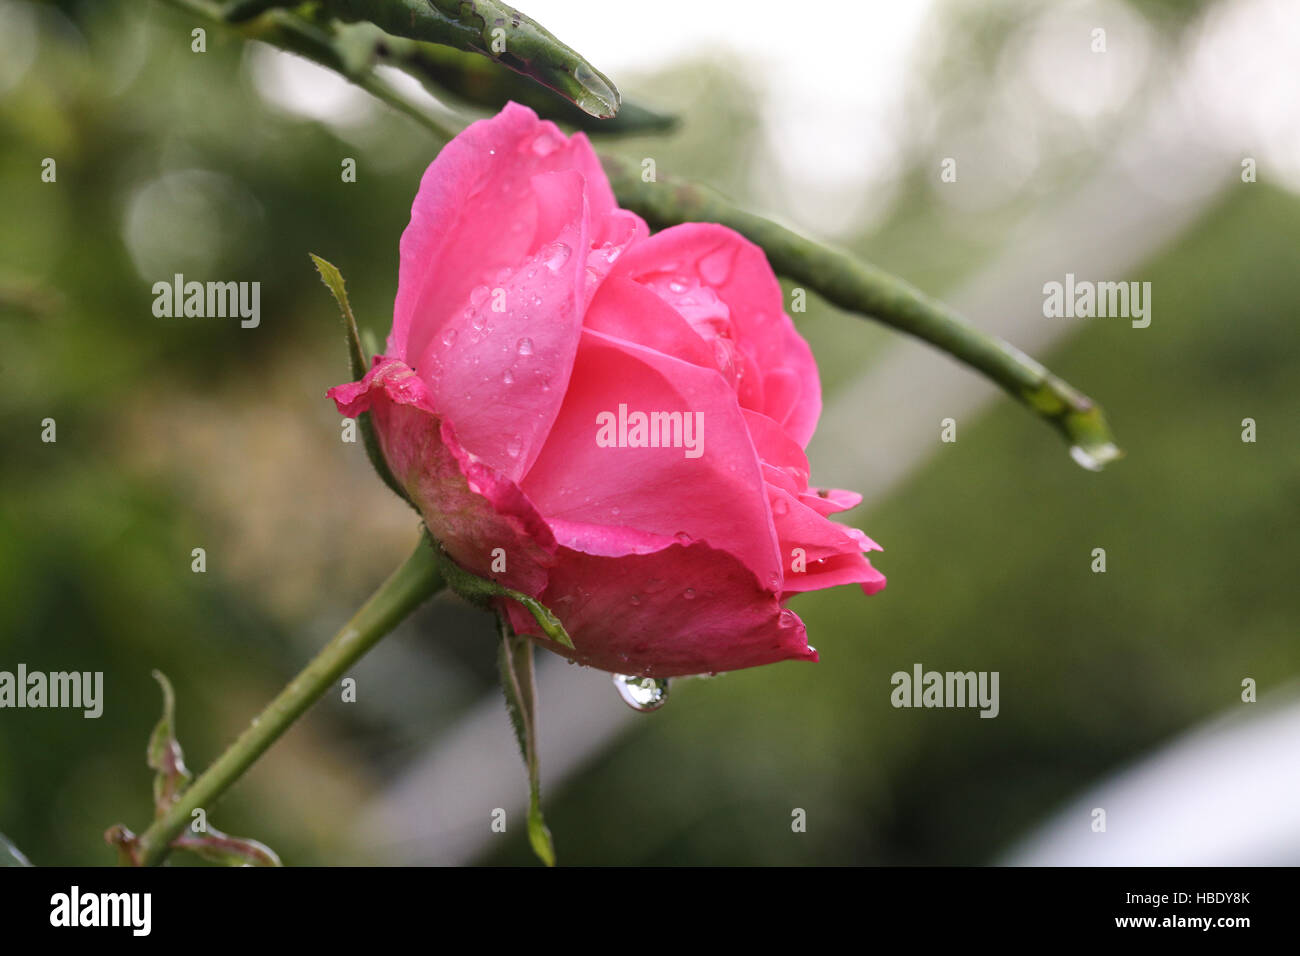 Rose in the rain - Stock Image